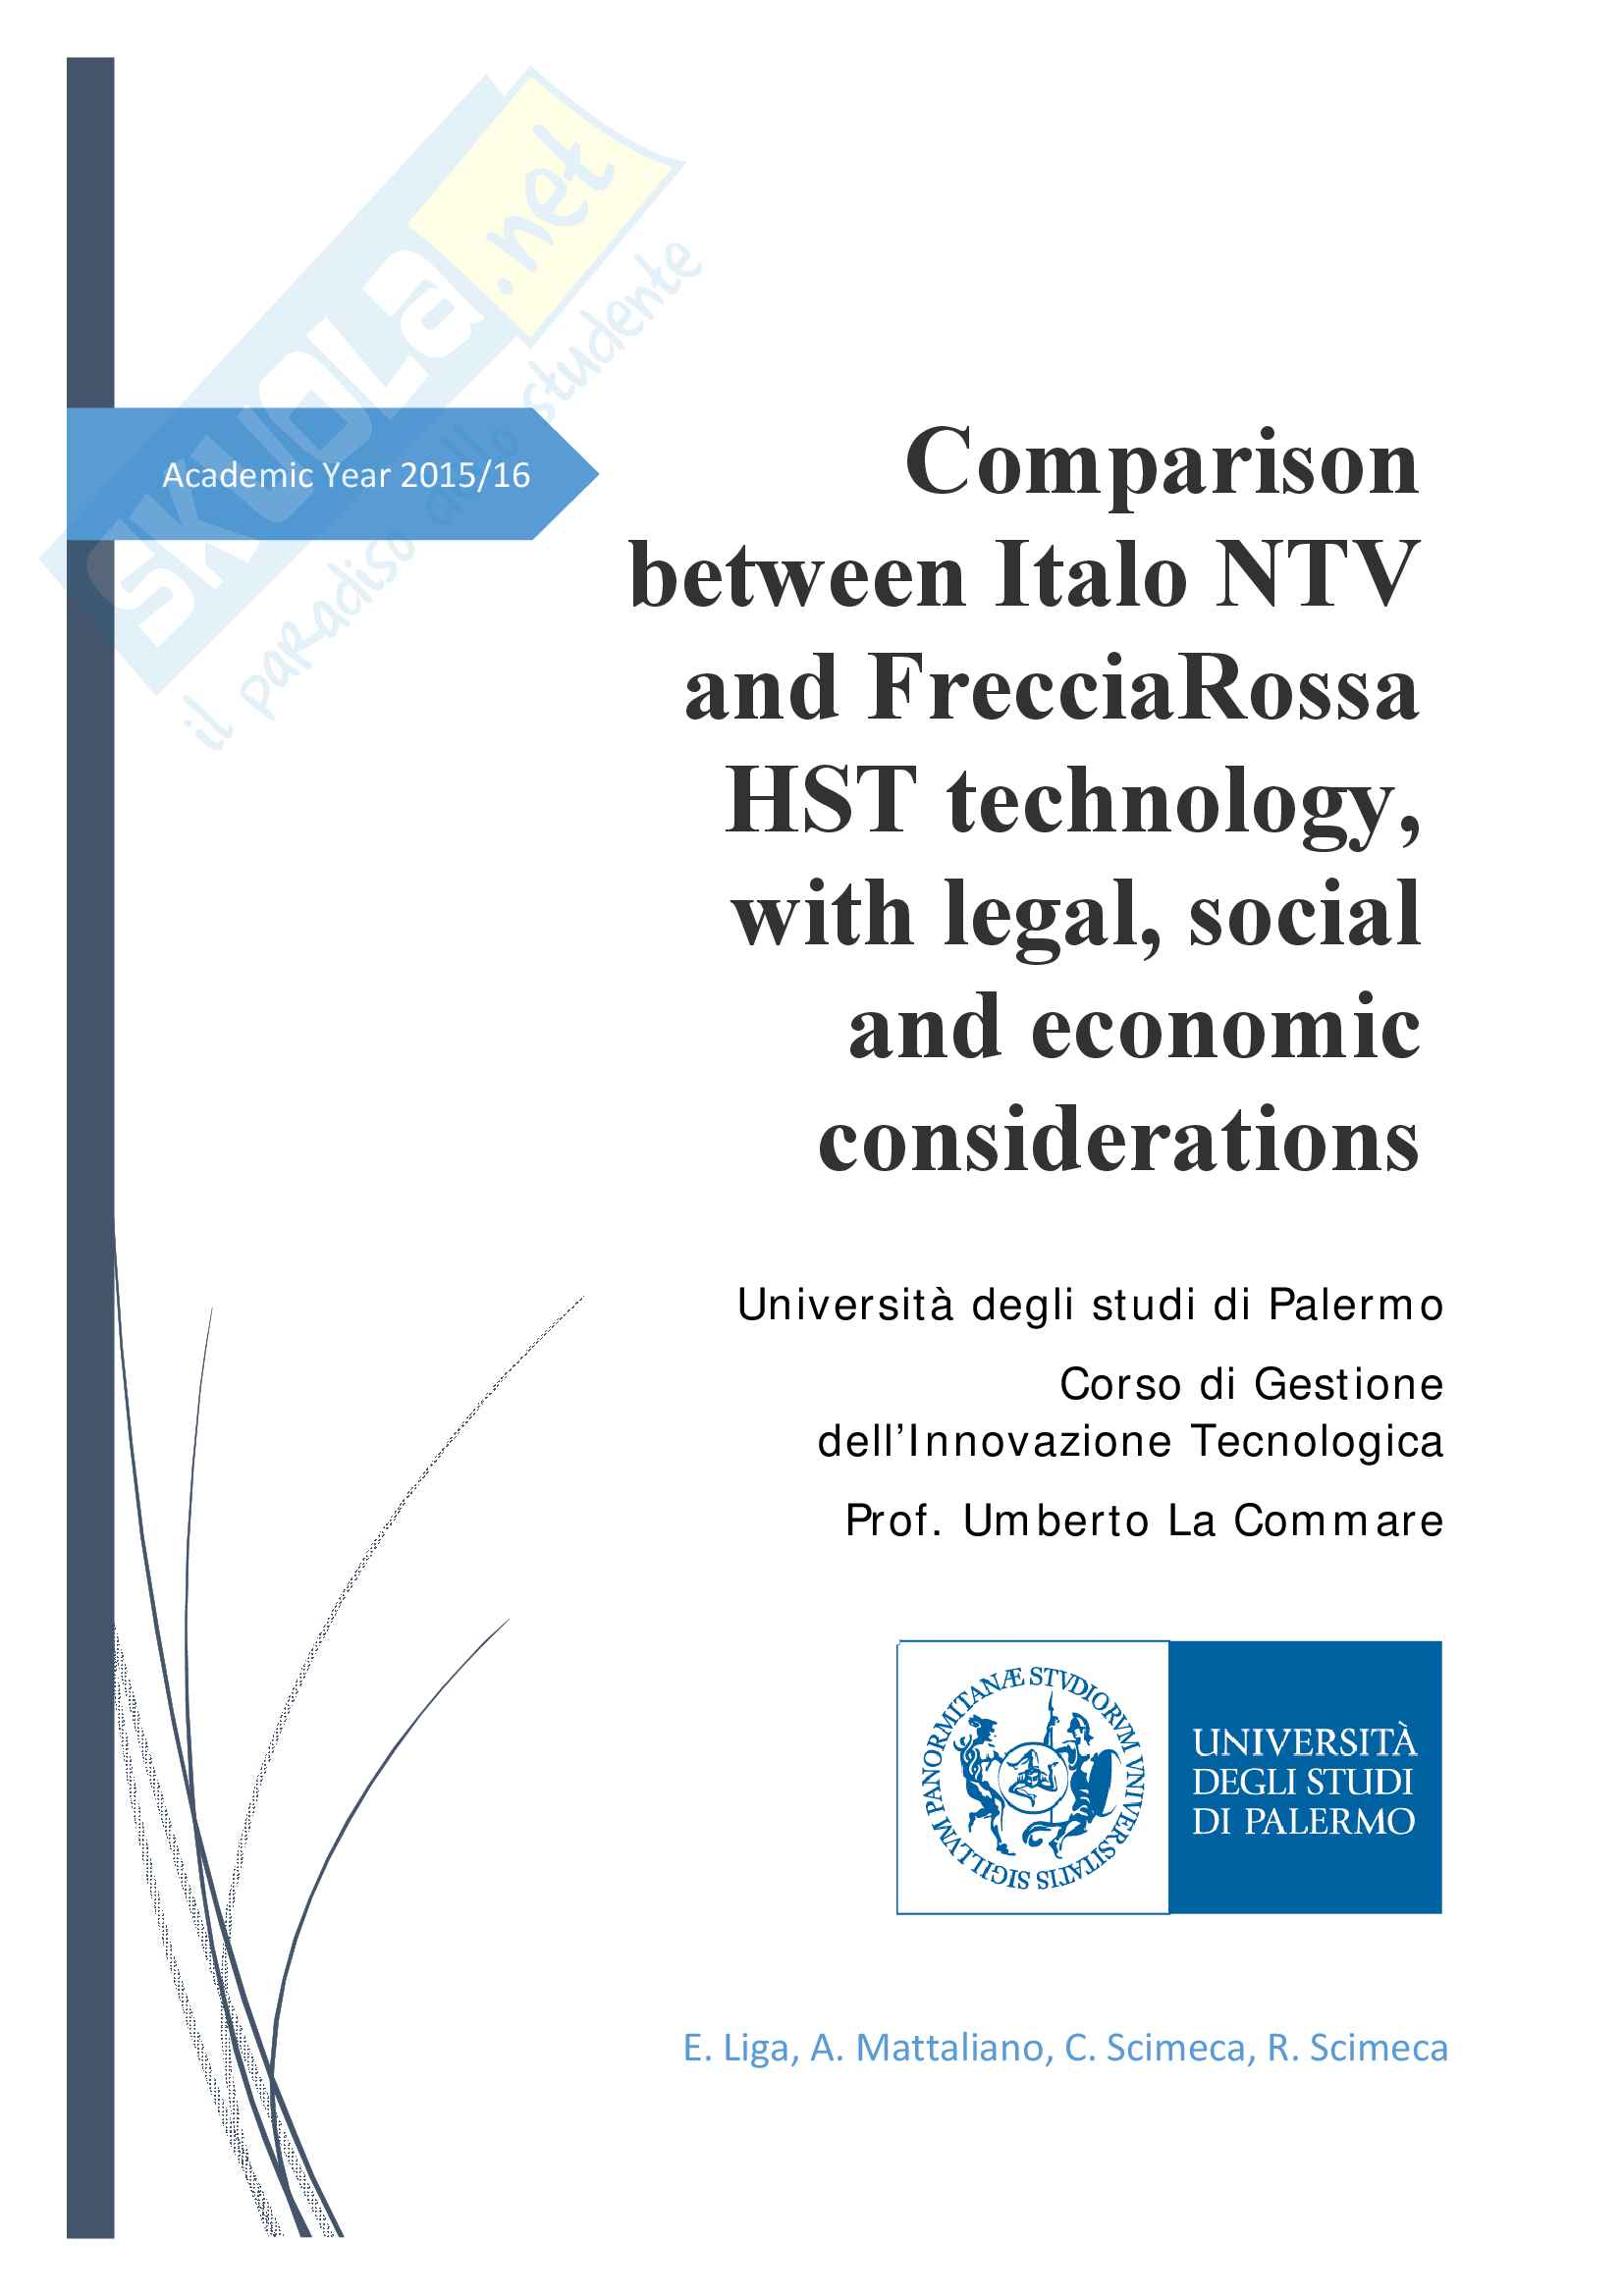 Comparison between Italo NTV and FrecciaRossa with legal, social and economic considerations